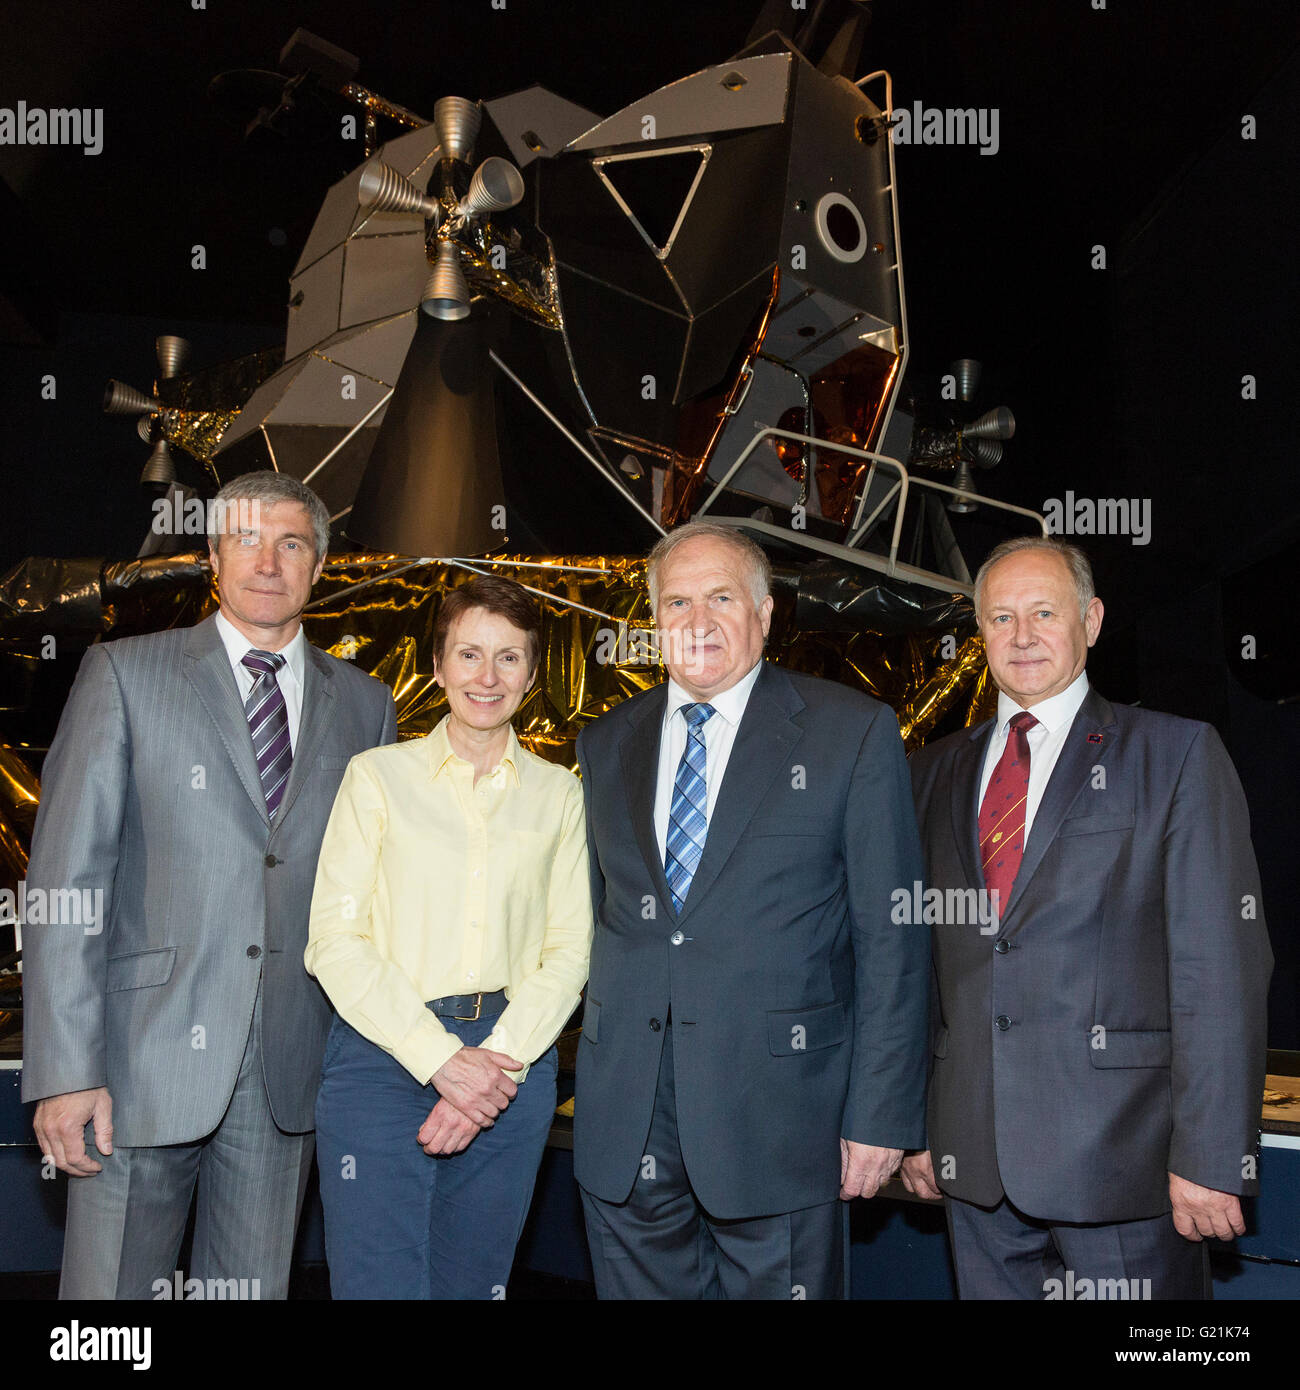 London, UK. 20 May 2016. L-R: Sergei Krikalev, Helen Sharman, Viktor Afanasyev and Anatoli Artsebarski. Helen Sharman - Stock Image